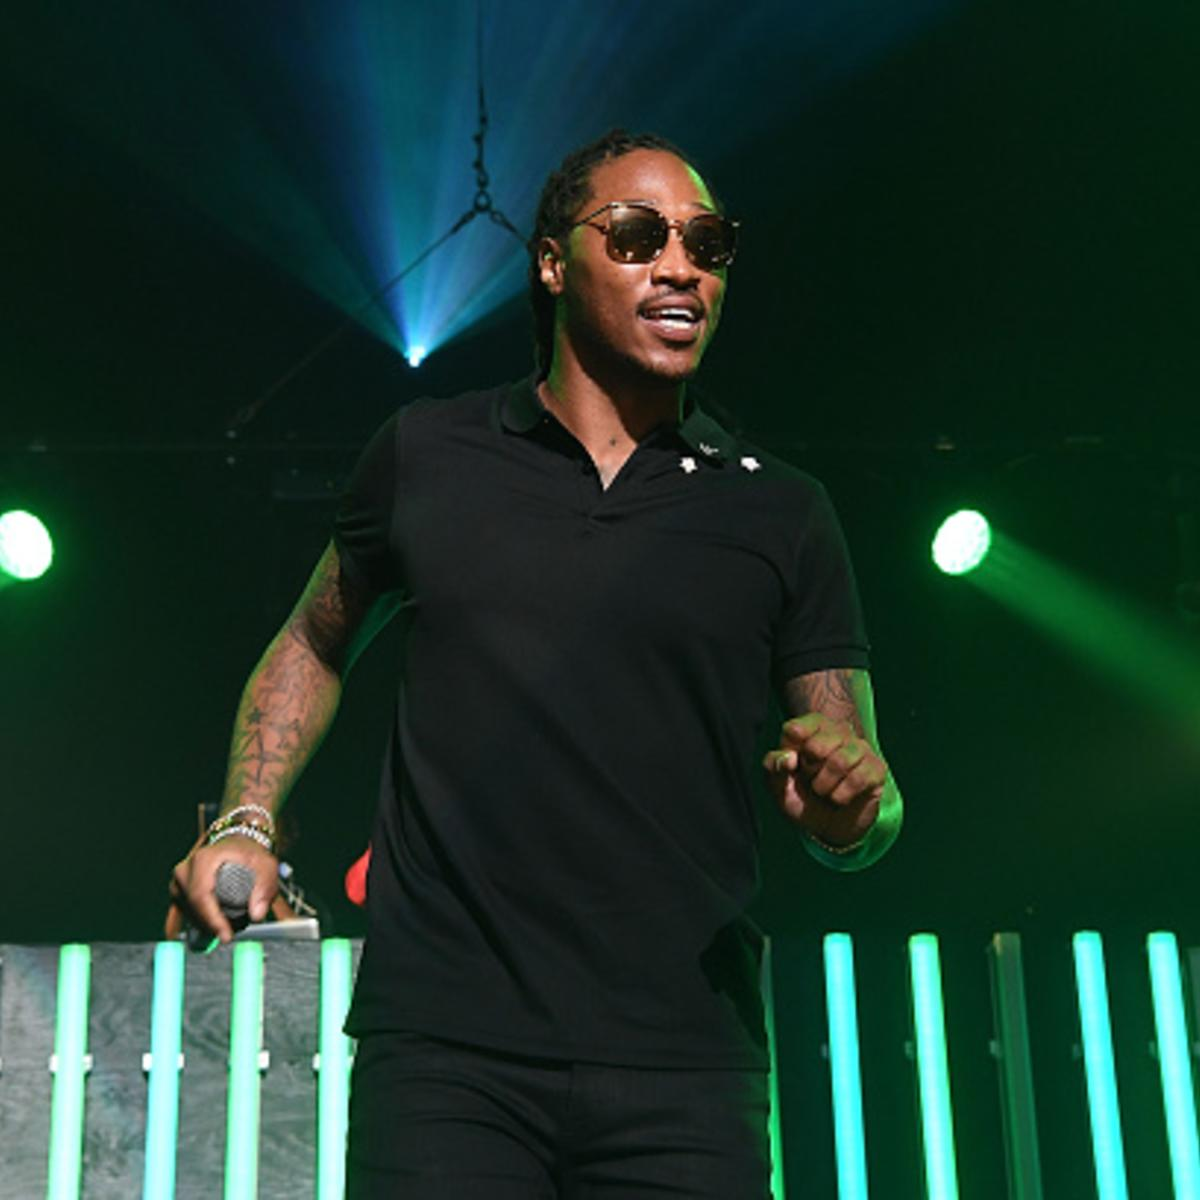 Paras Griffin/Getty Images for Atlantic Records